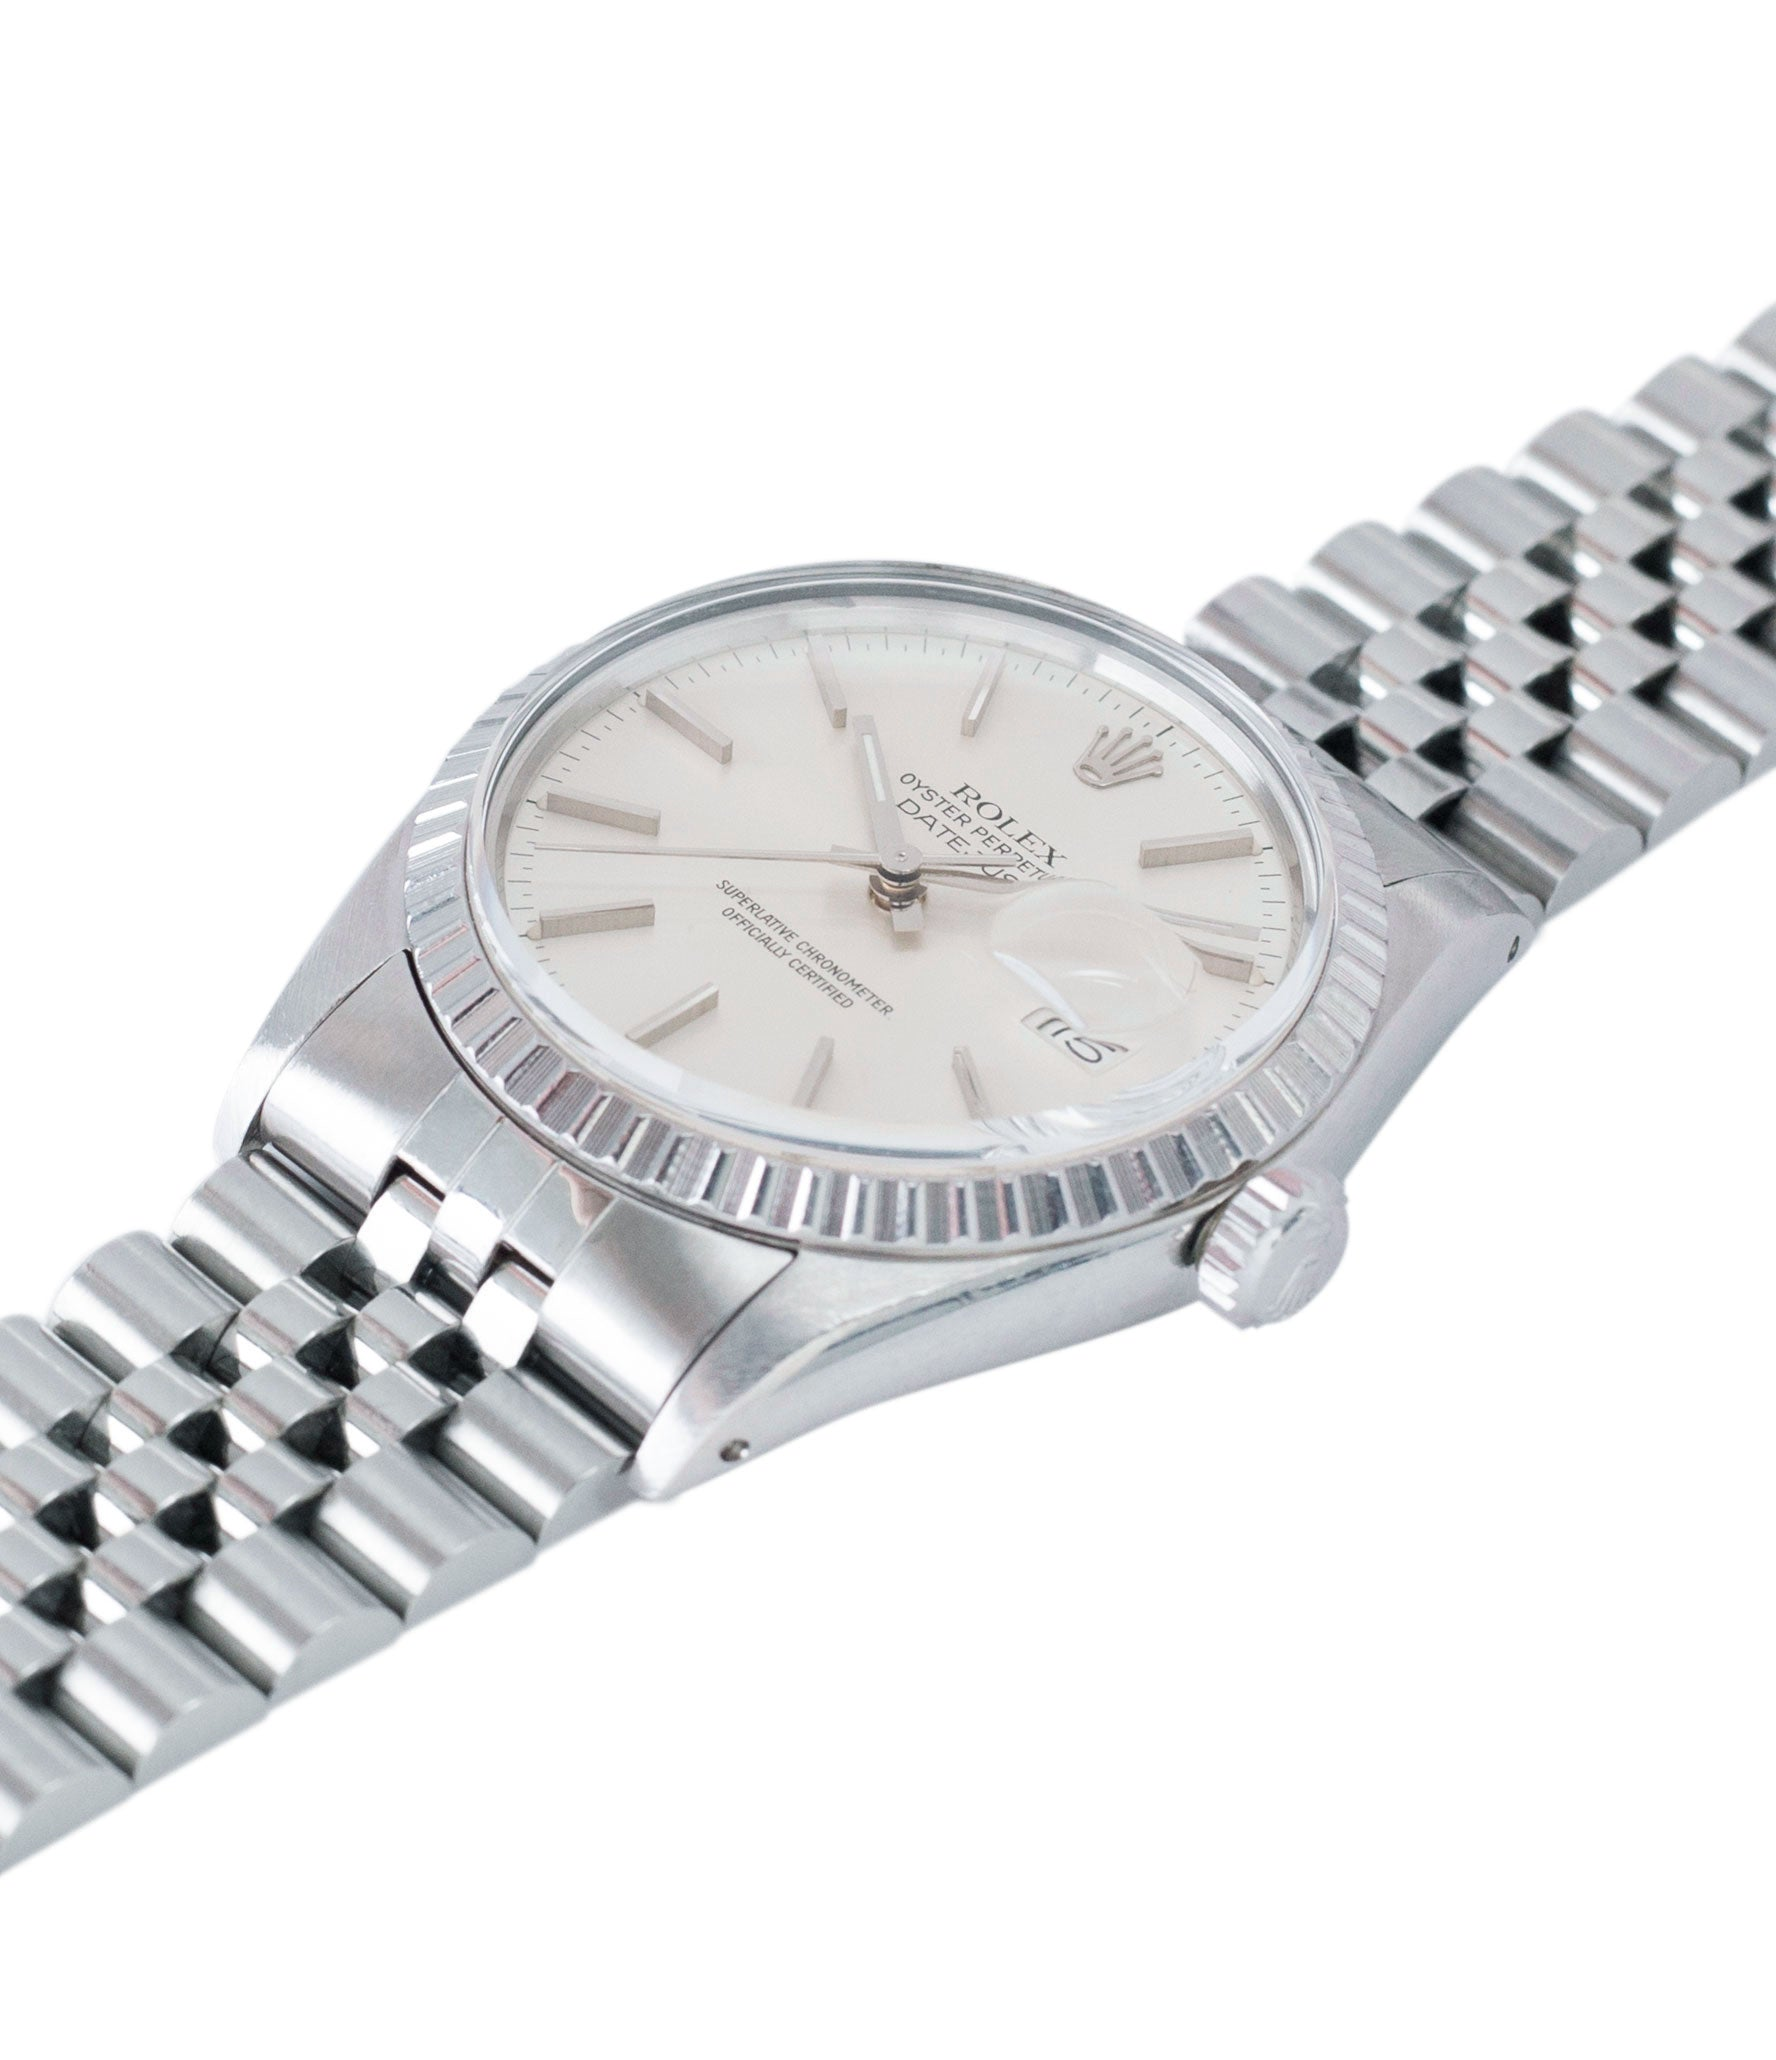 shop vintage full set Rolex Oyster Perpetual Datejust 16030 steel automatic silver dial watch Jubilee bracelet for sale online at A Collected Man London UK vintage watch specialist